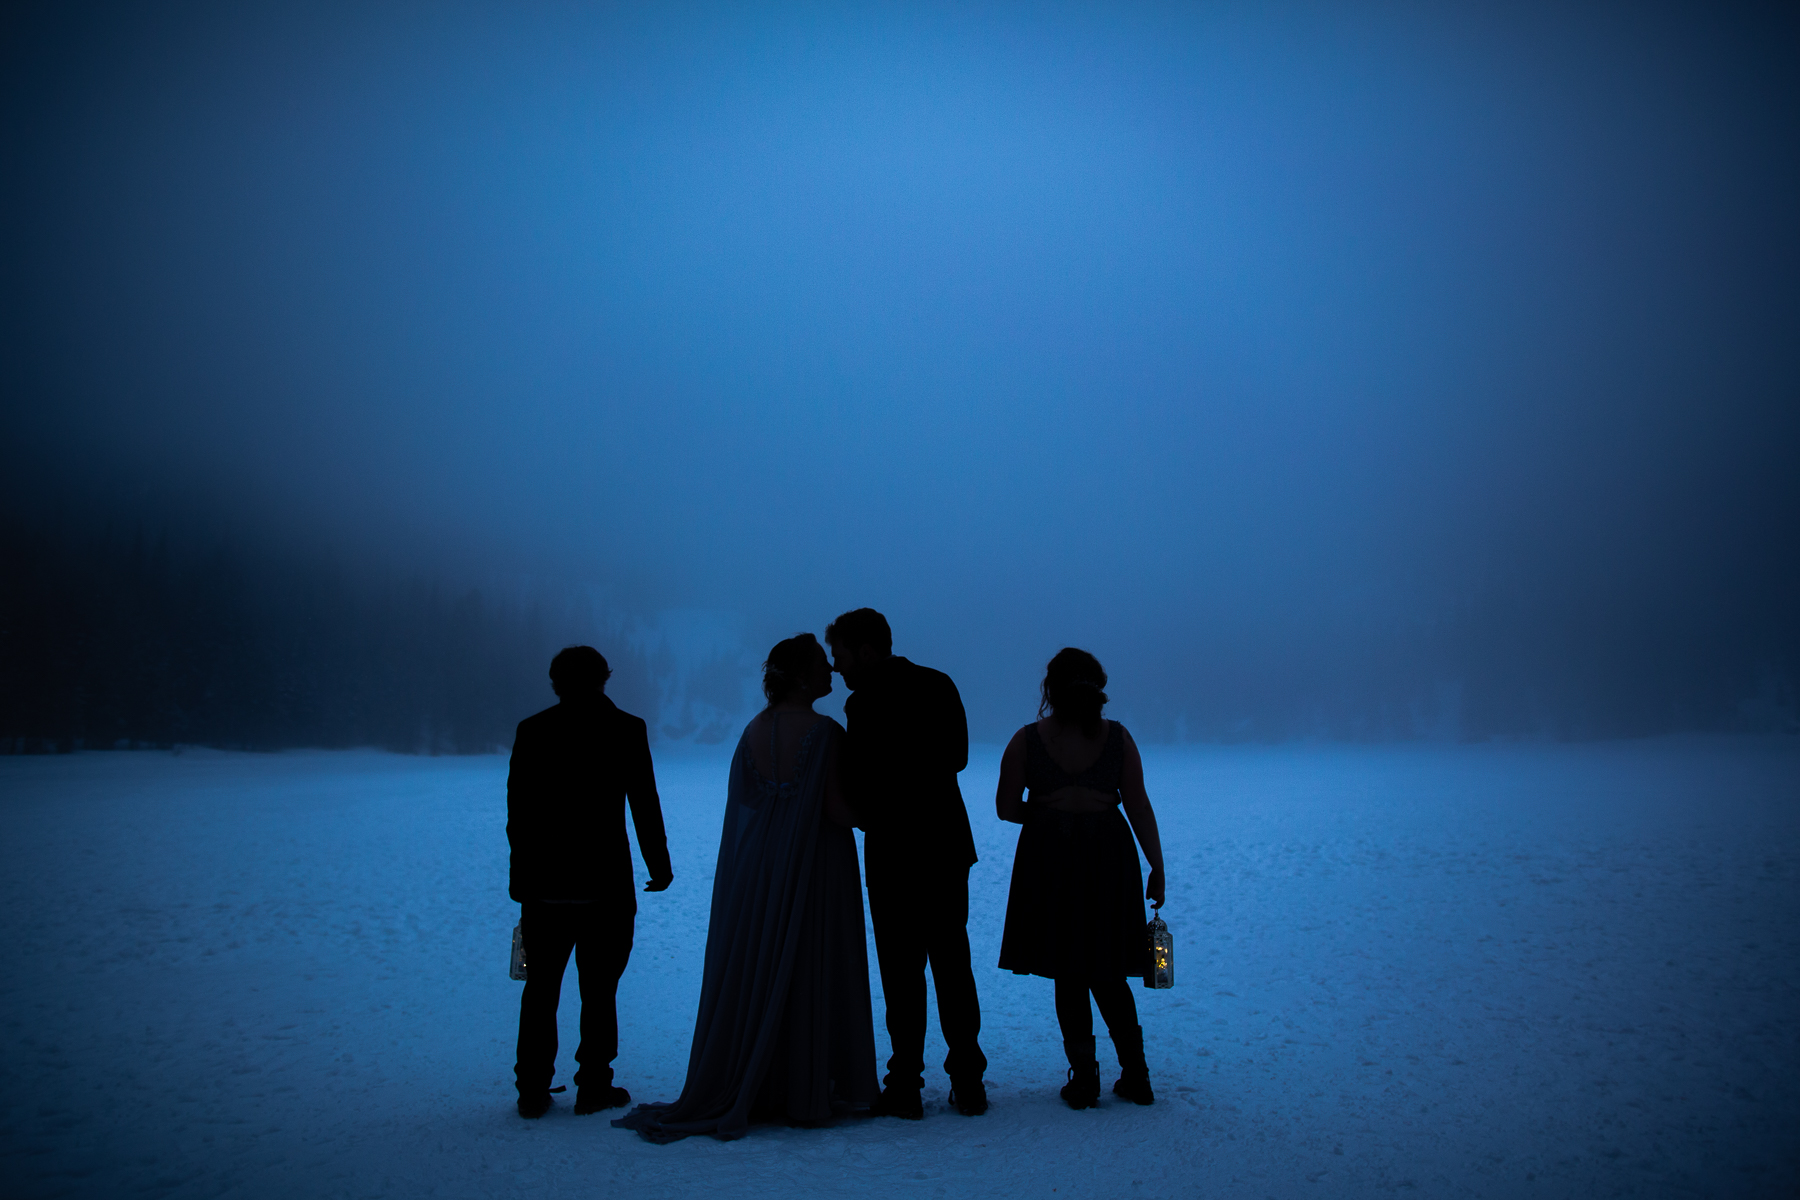 Estes Park Wedding Photographer   A portrait of the couple silhouetted against the foggy lake